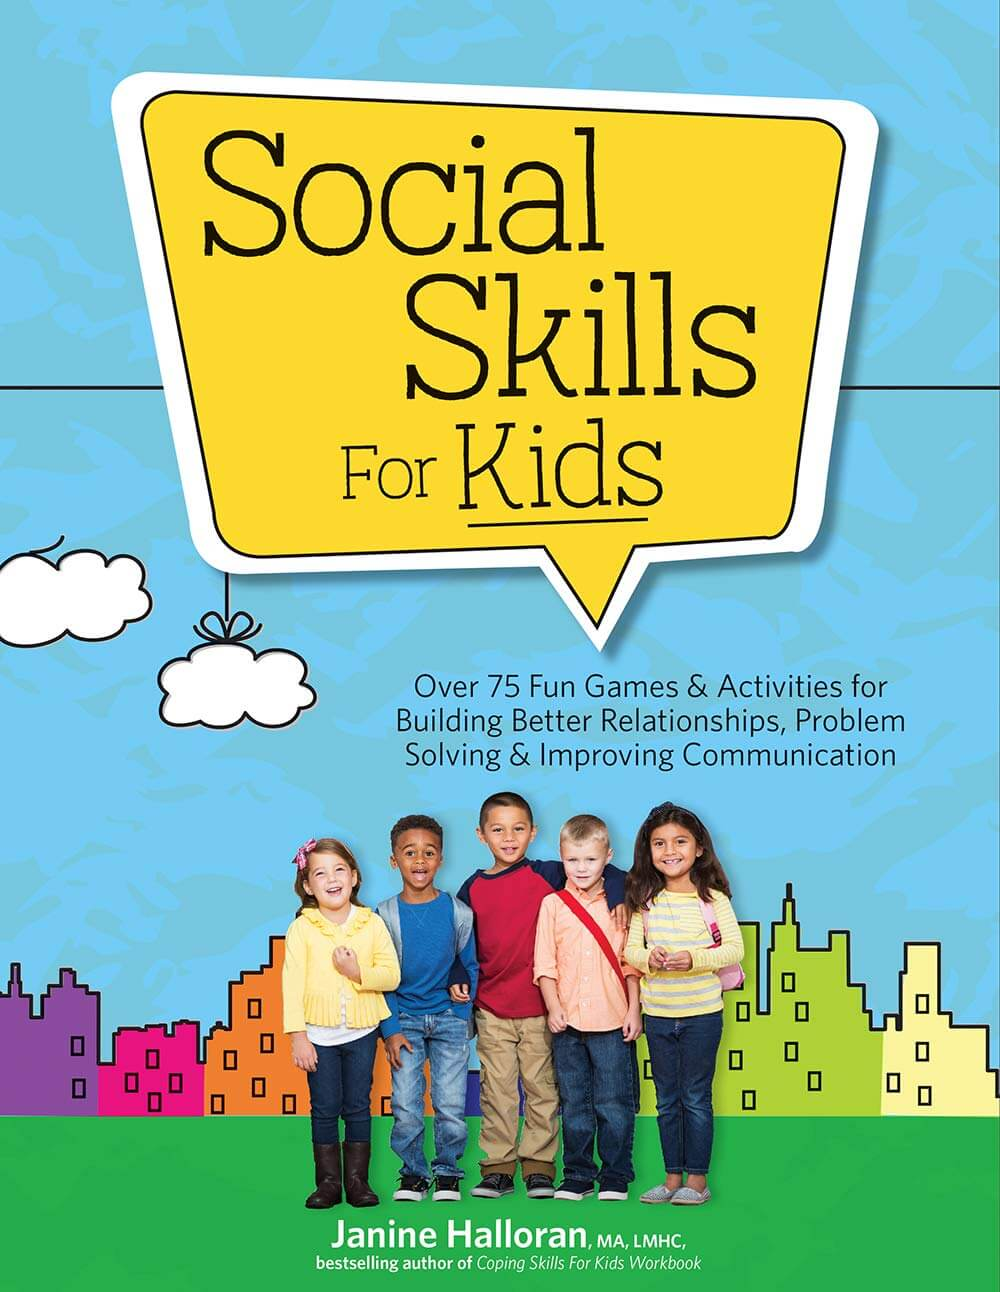 Social Skills for Kids - Over 75 Fun Games & Activities For Building Better Relationships, Problem Solving & Improving Communication